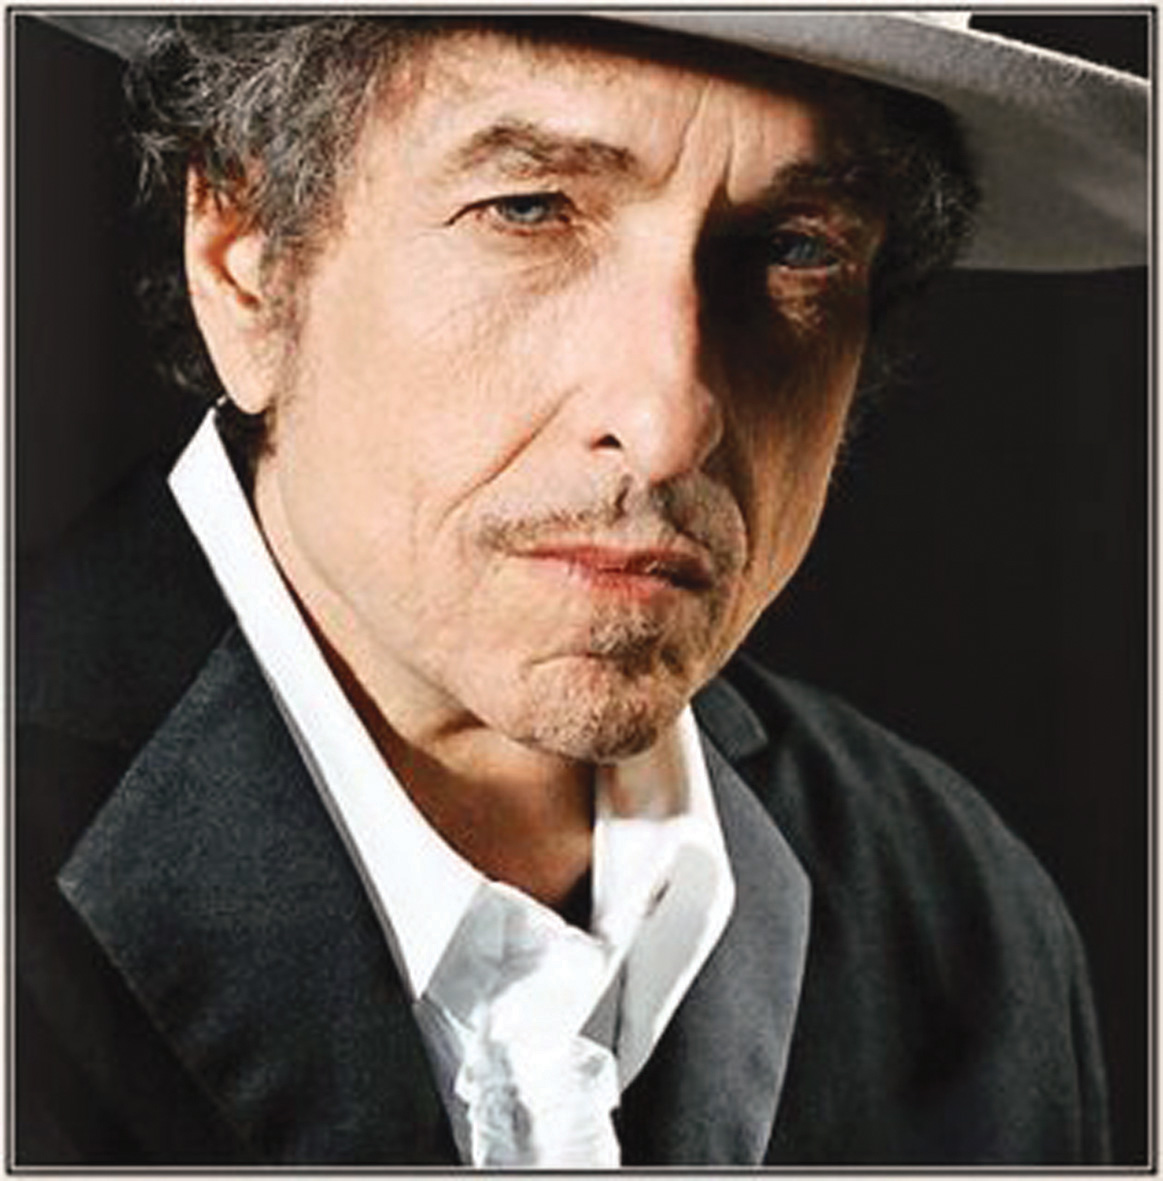 music bob dylan essays Bob dylan's newly-released album, shadows in the night, features dylan  covering pop standards made famous by frank sinatra during the.